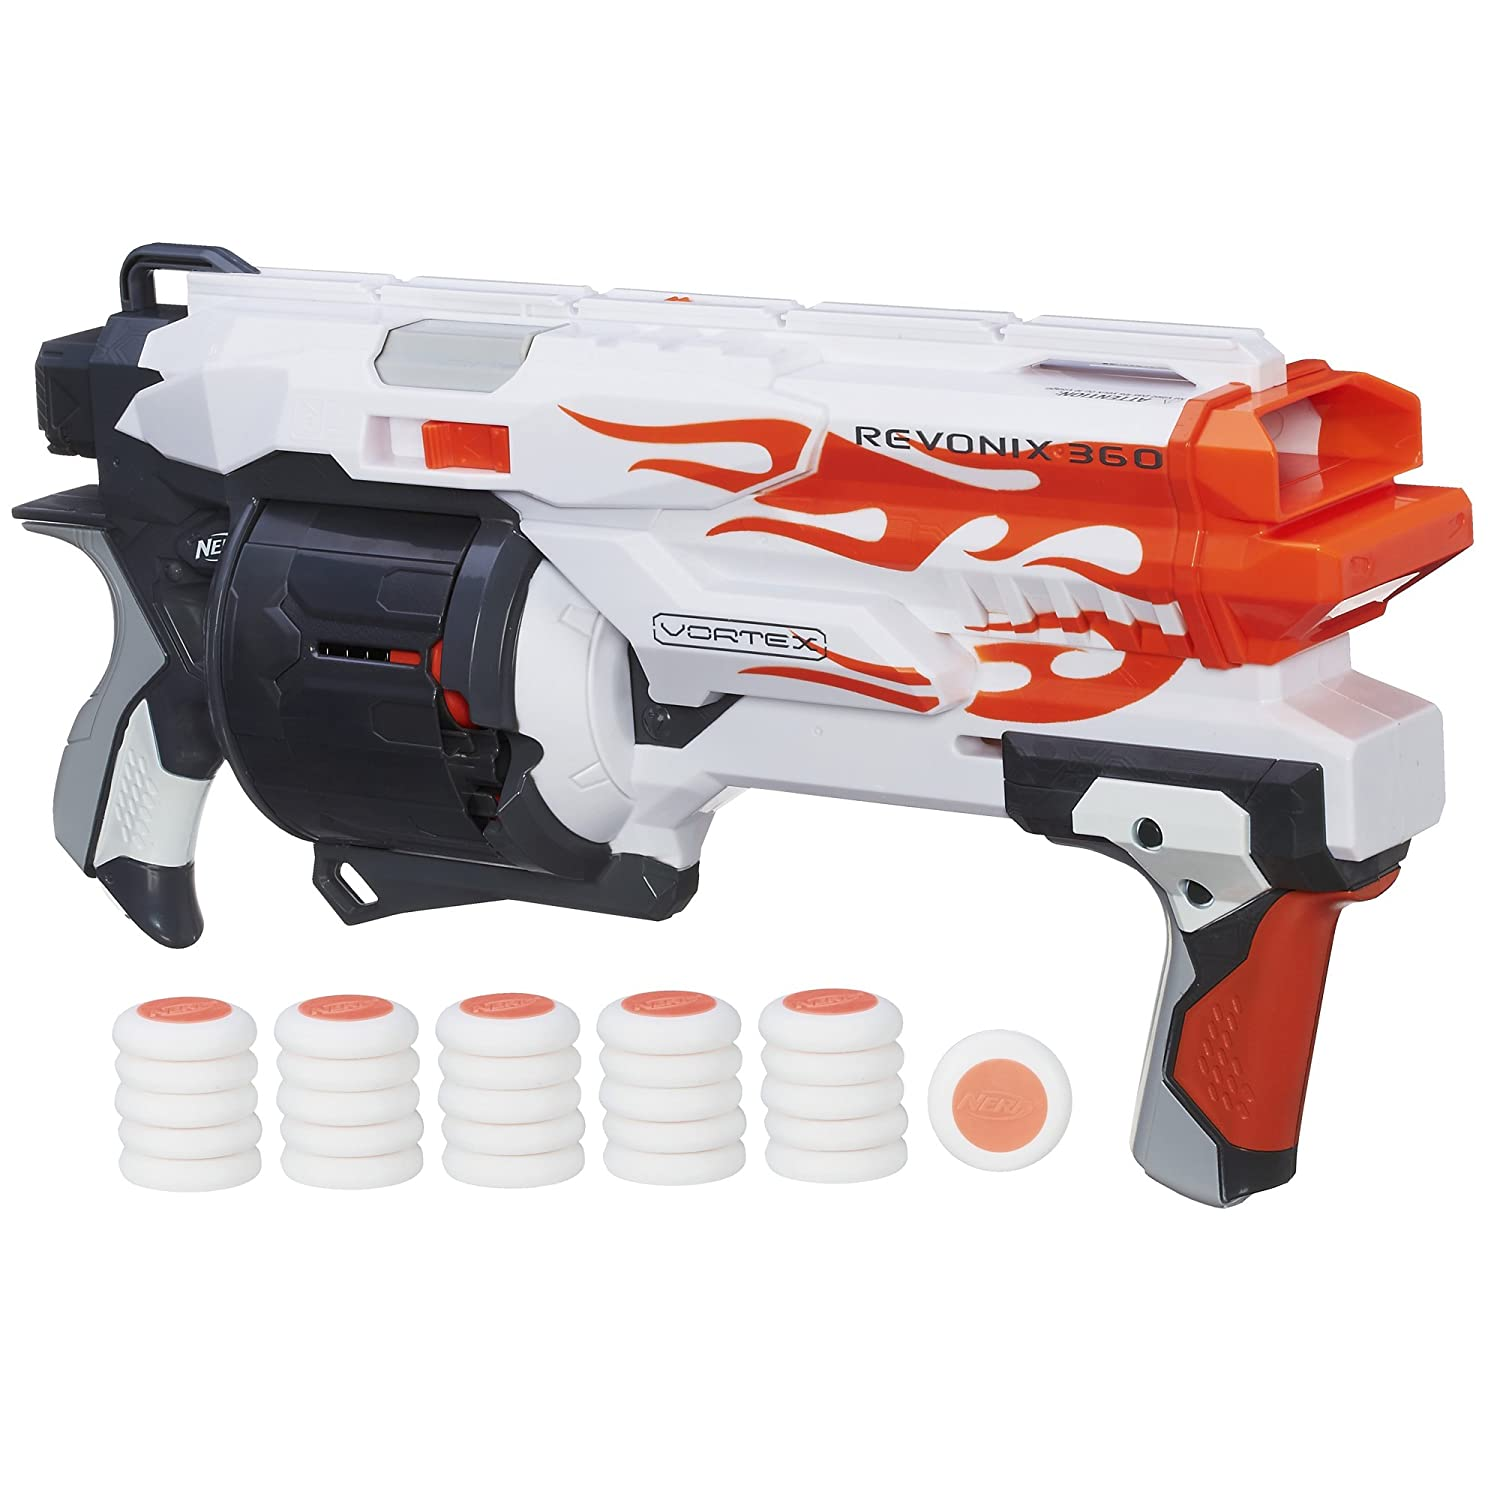 Blast into intense, blazing, Nerf action with the new 68 mph Rival Apollo  XV-700